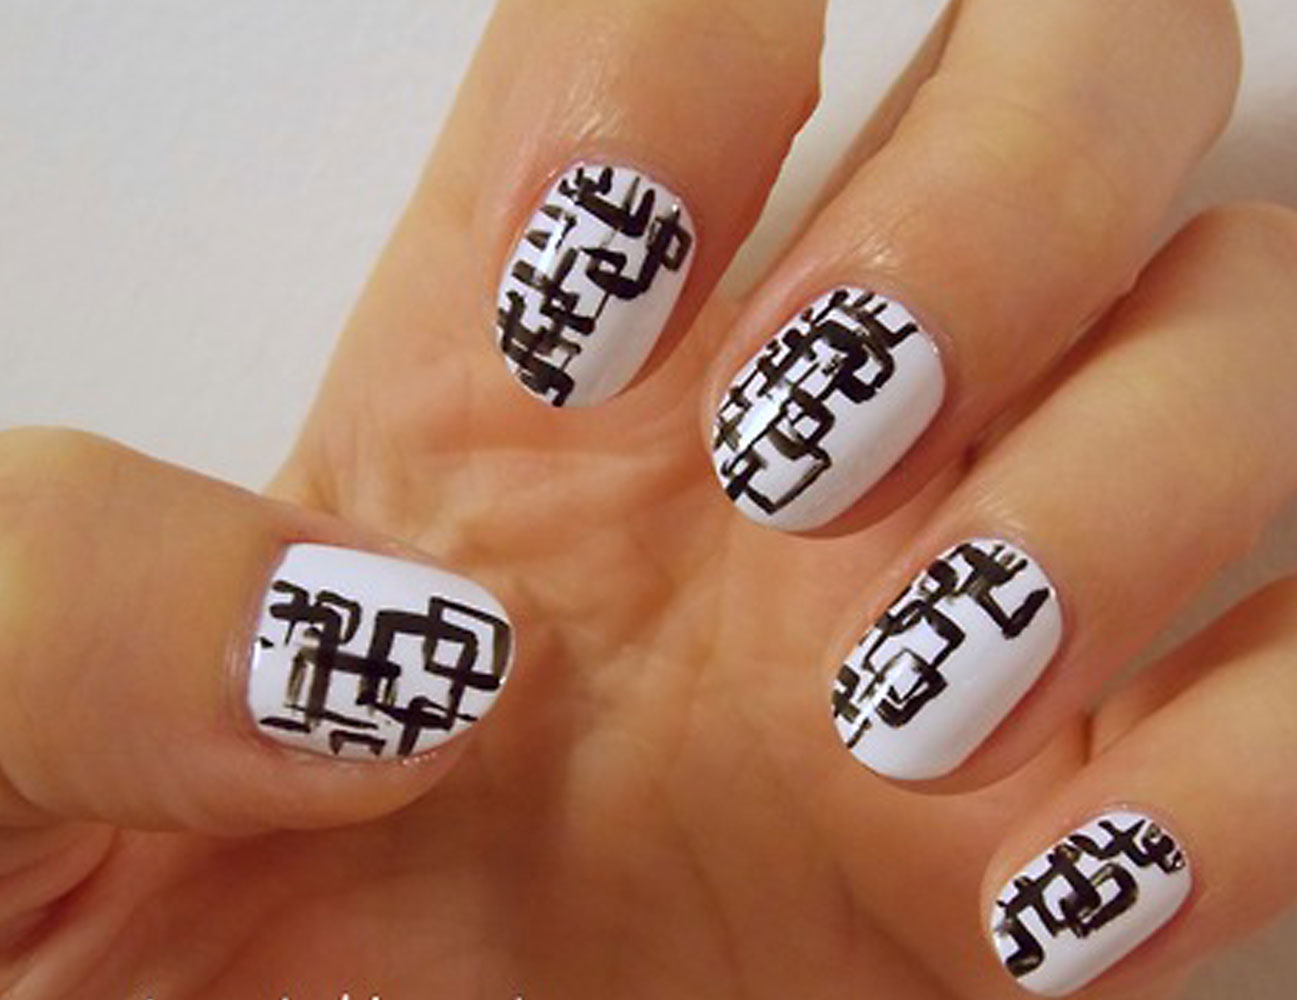 White color nail art - Nail Art Tremendous White And Black Color